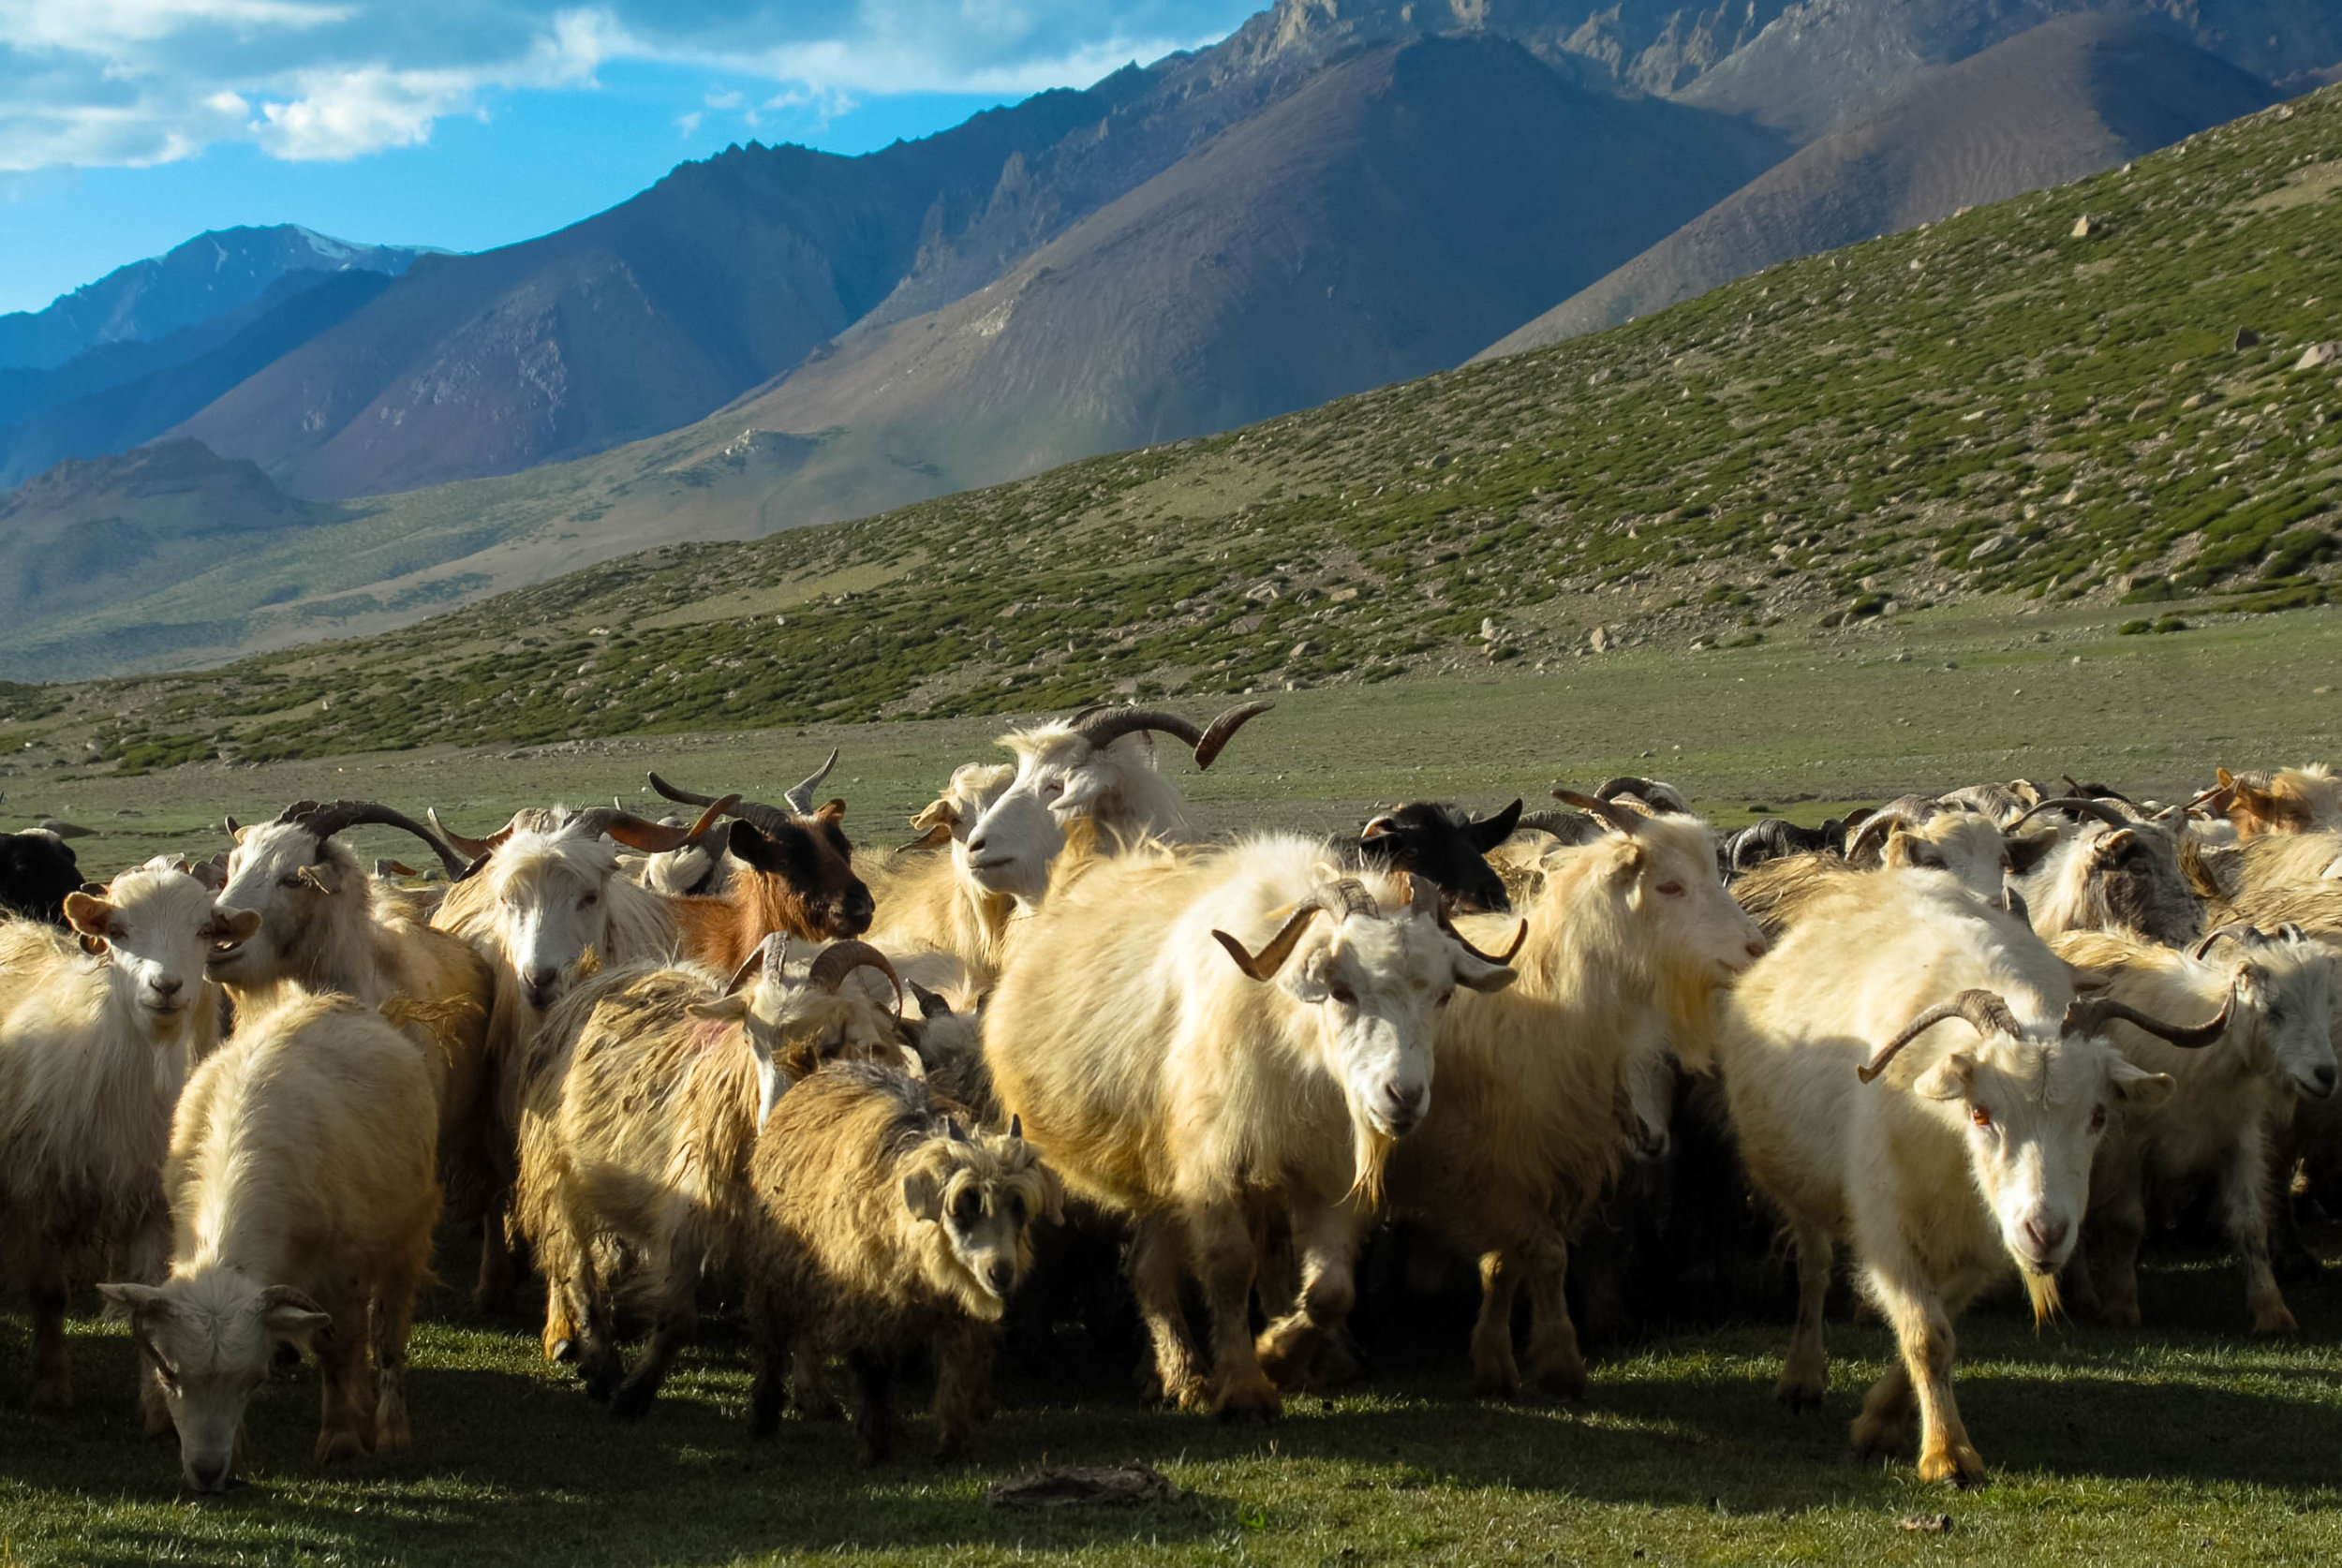 A herd of Kashmiri sheep paid a visit to our tent.